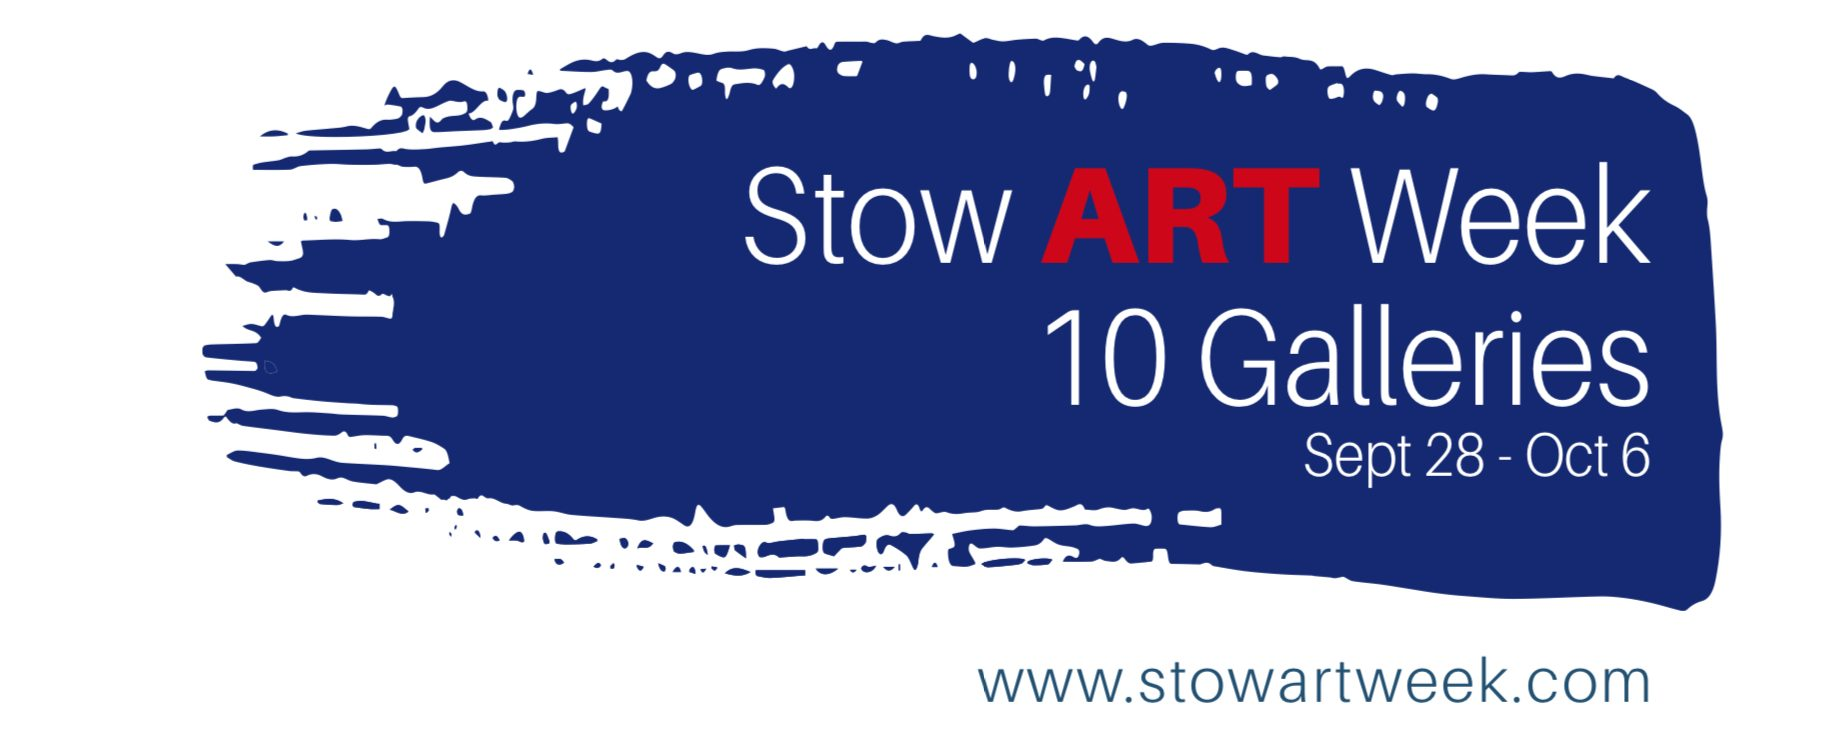 Stow ART Week